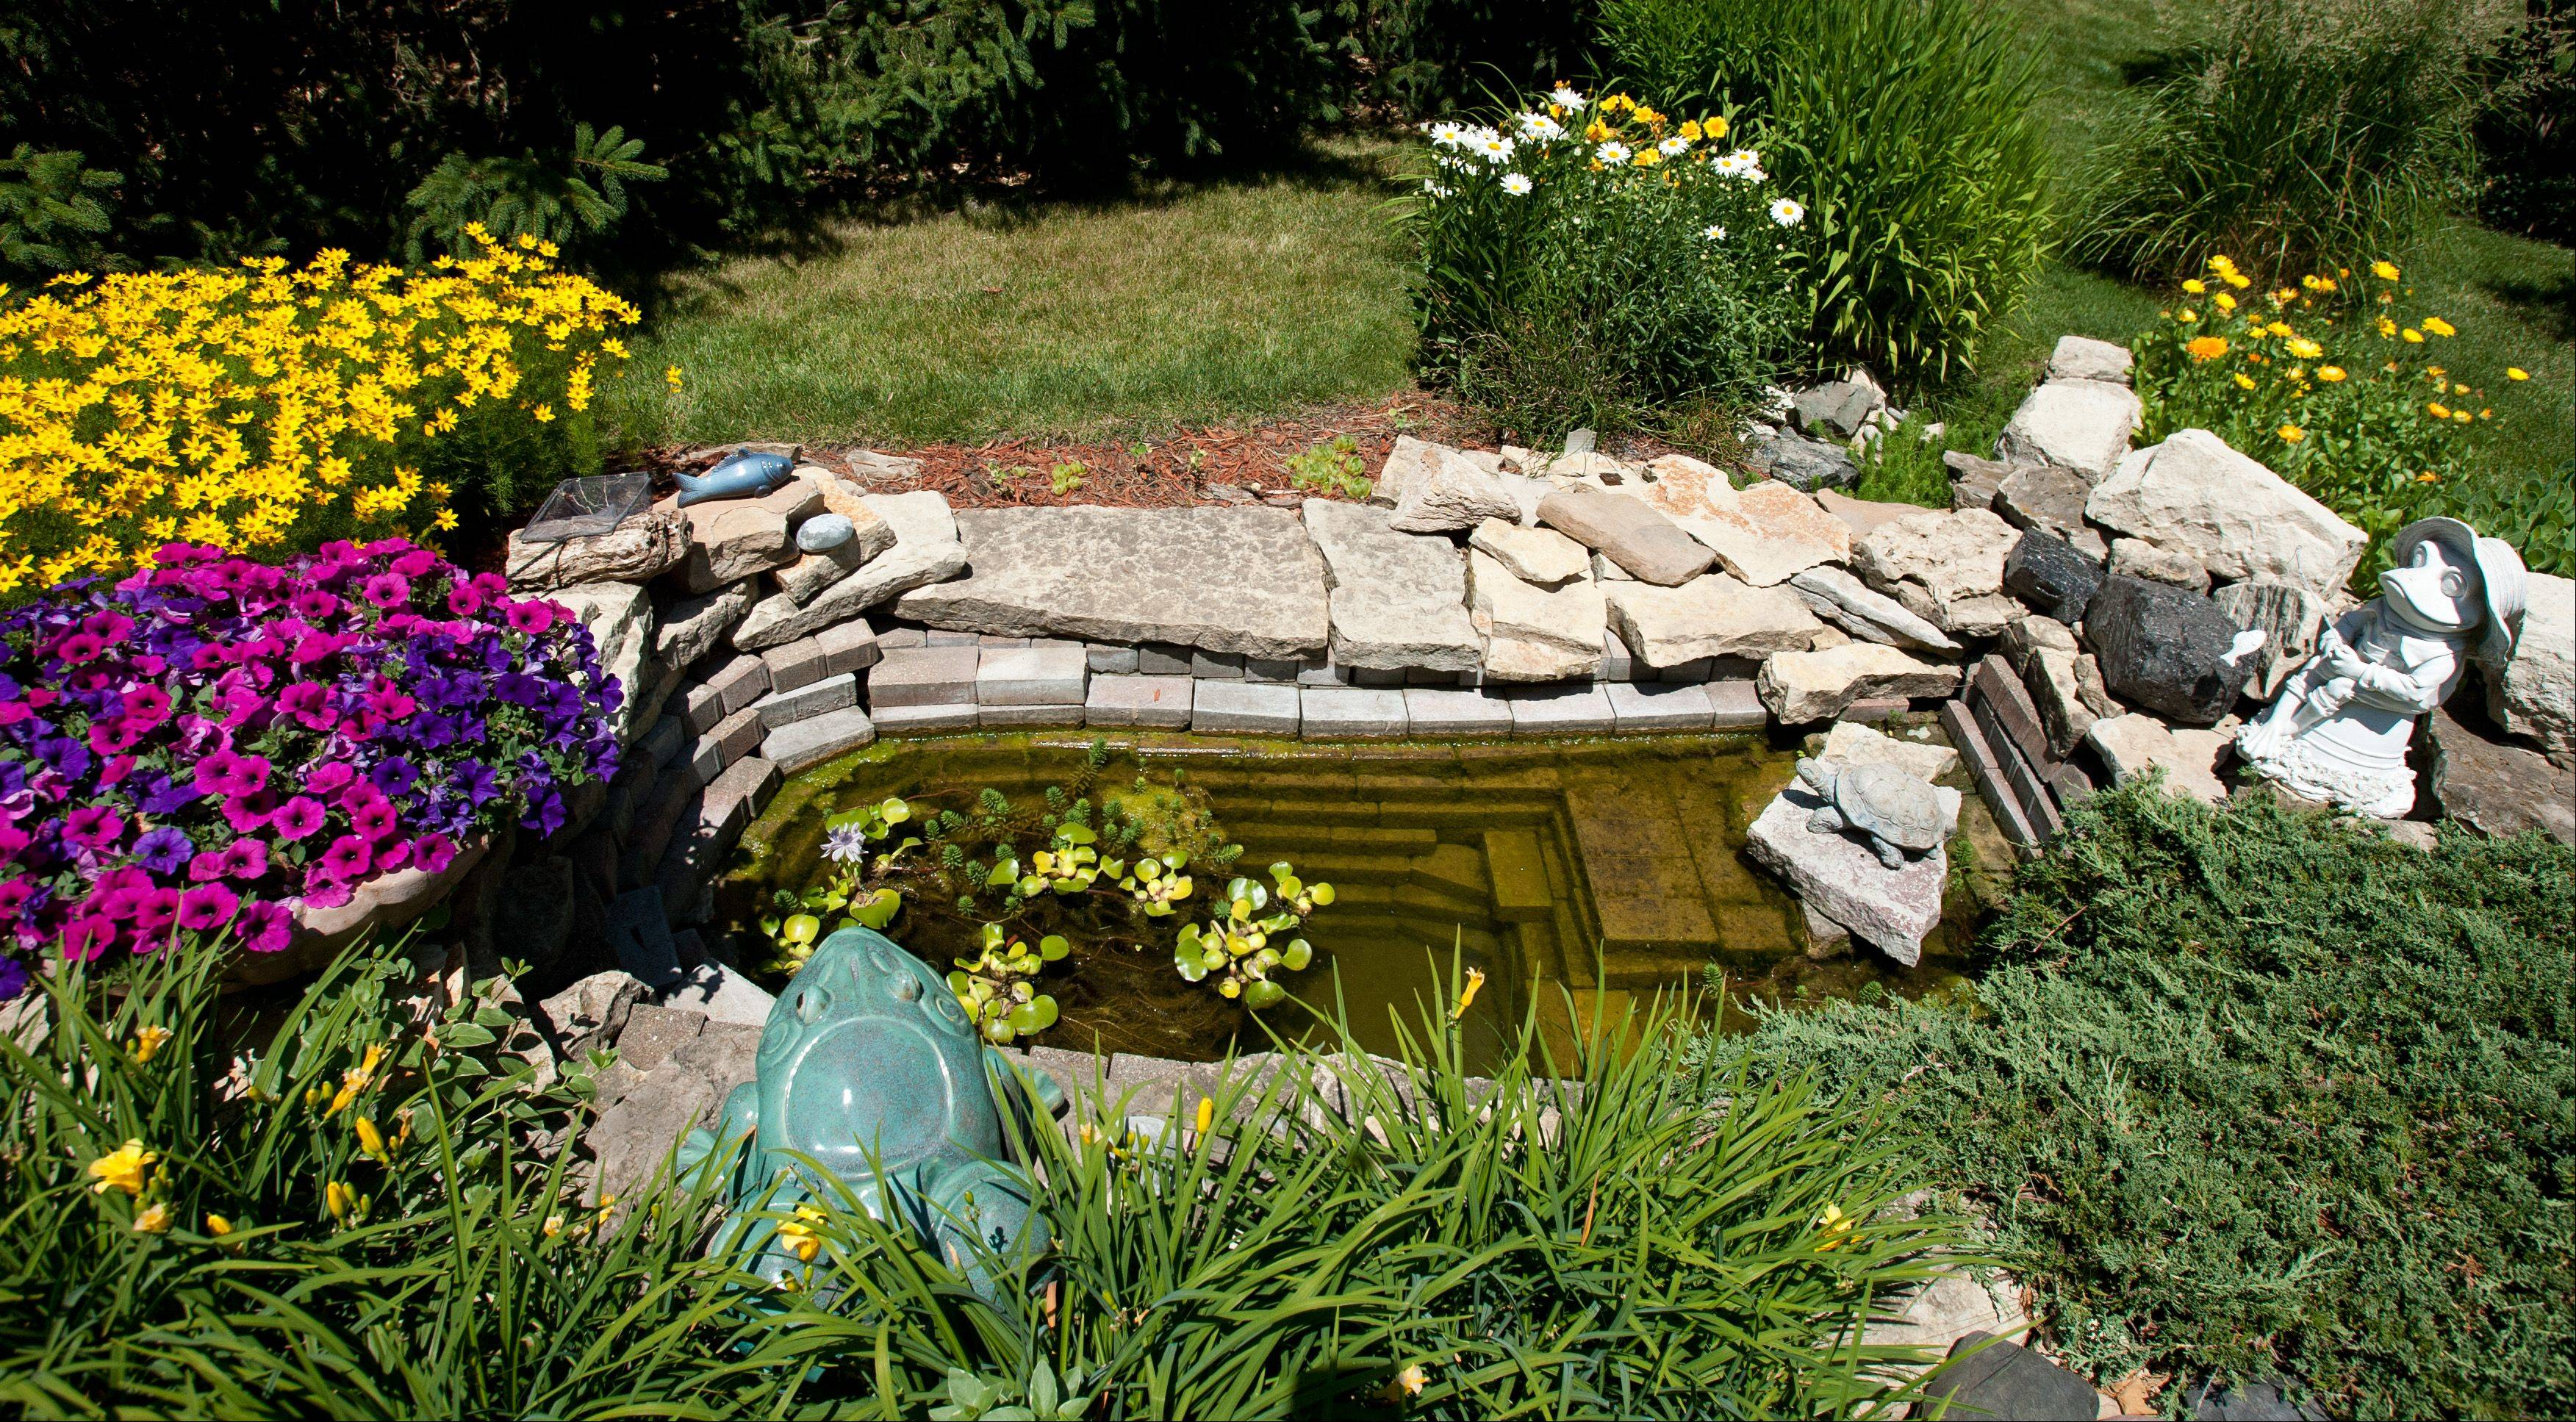 The Lenkes' Lisle yard includes water features, like the small collecting basin and a trailing creek. The garden is among seven private yards featured on the Lisle Woman's Club's Garden Gait tour on Sunday, June 24.